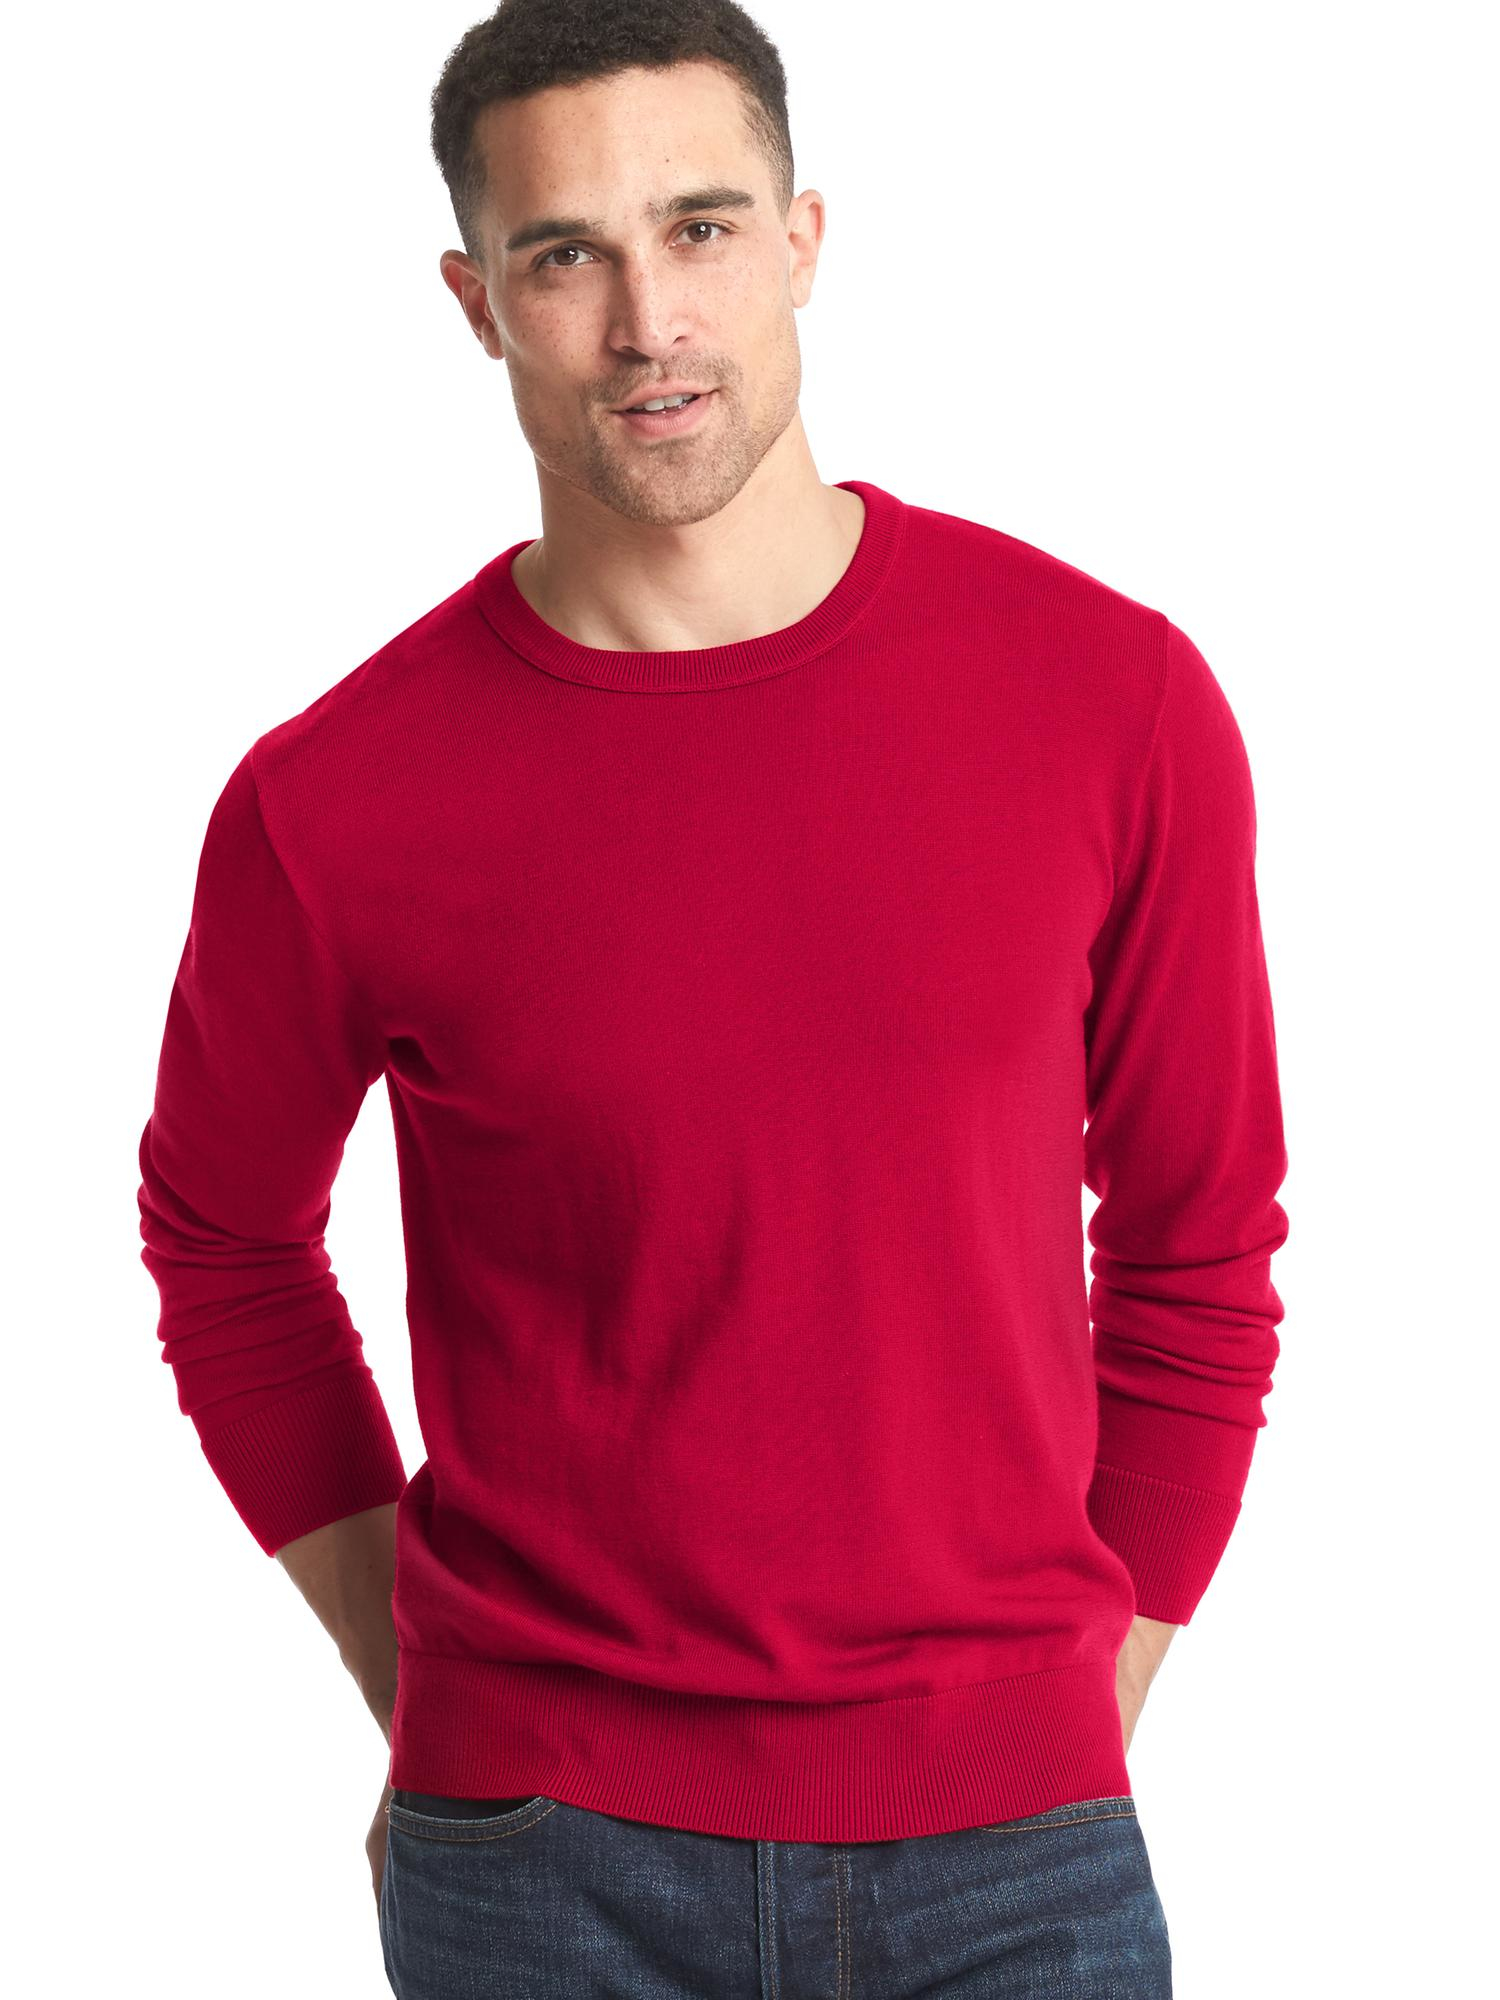 Men's Merino Wool Ribbed Cardigan - Reviews. Our Merino Ribbed Cardigan is extremely warm and durable making it a great external layer for those how like to be outside. Only % natural fibers were used making this both breathable and very warm. Ideal for relaxing indoors or for providing some much needed warmth when outdoors.